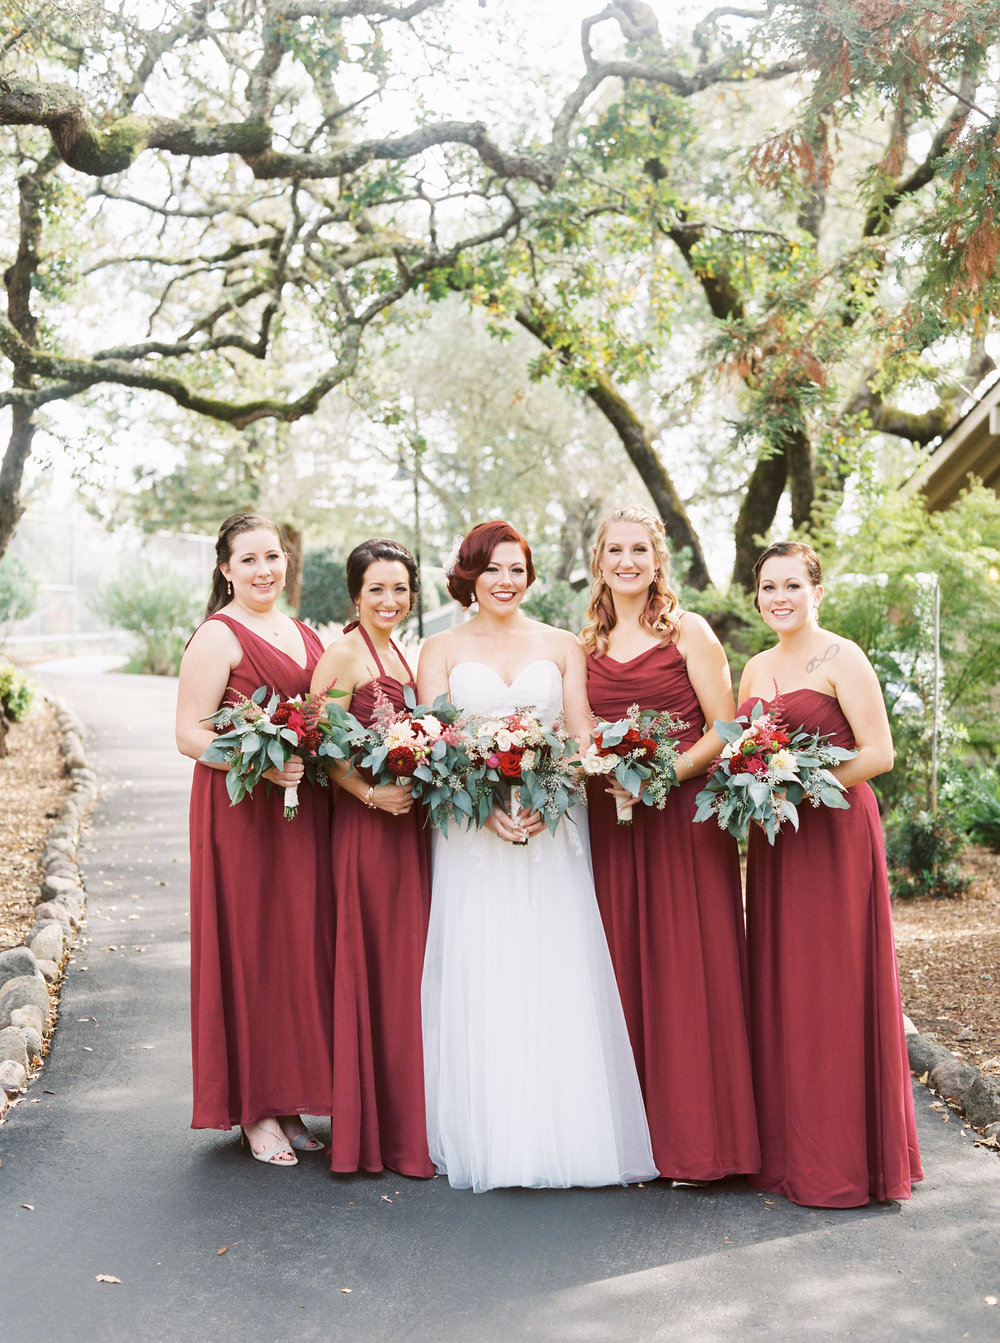 fall-inspired-wedding-at-vitners-golf-club-in-napa-california-65.jpg